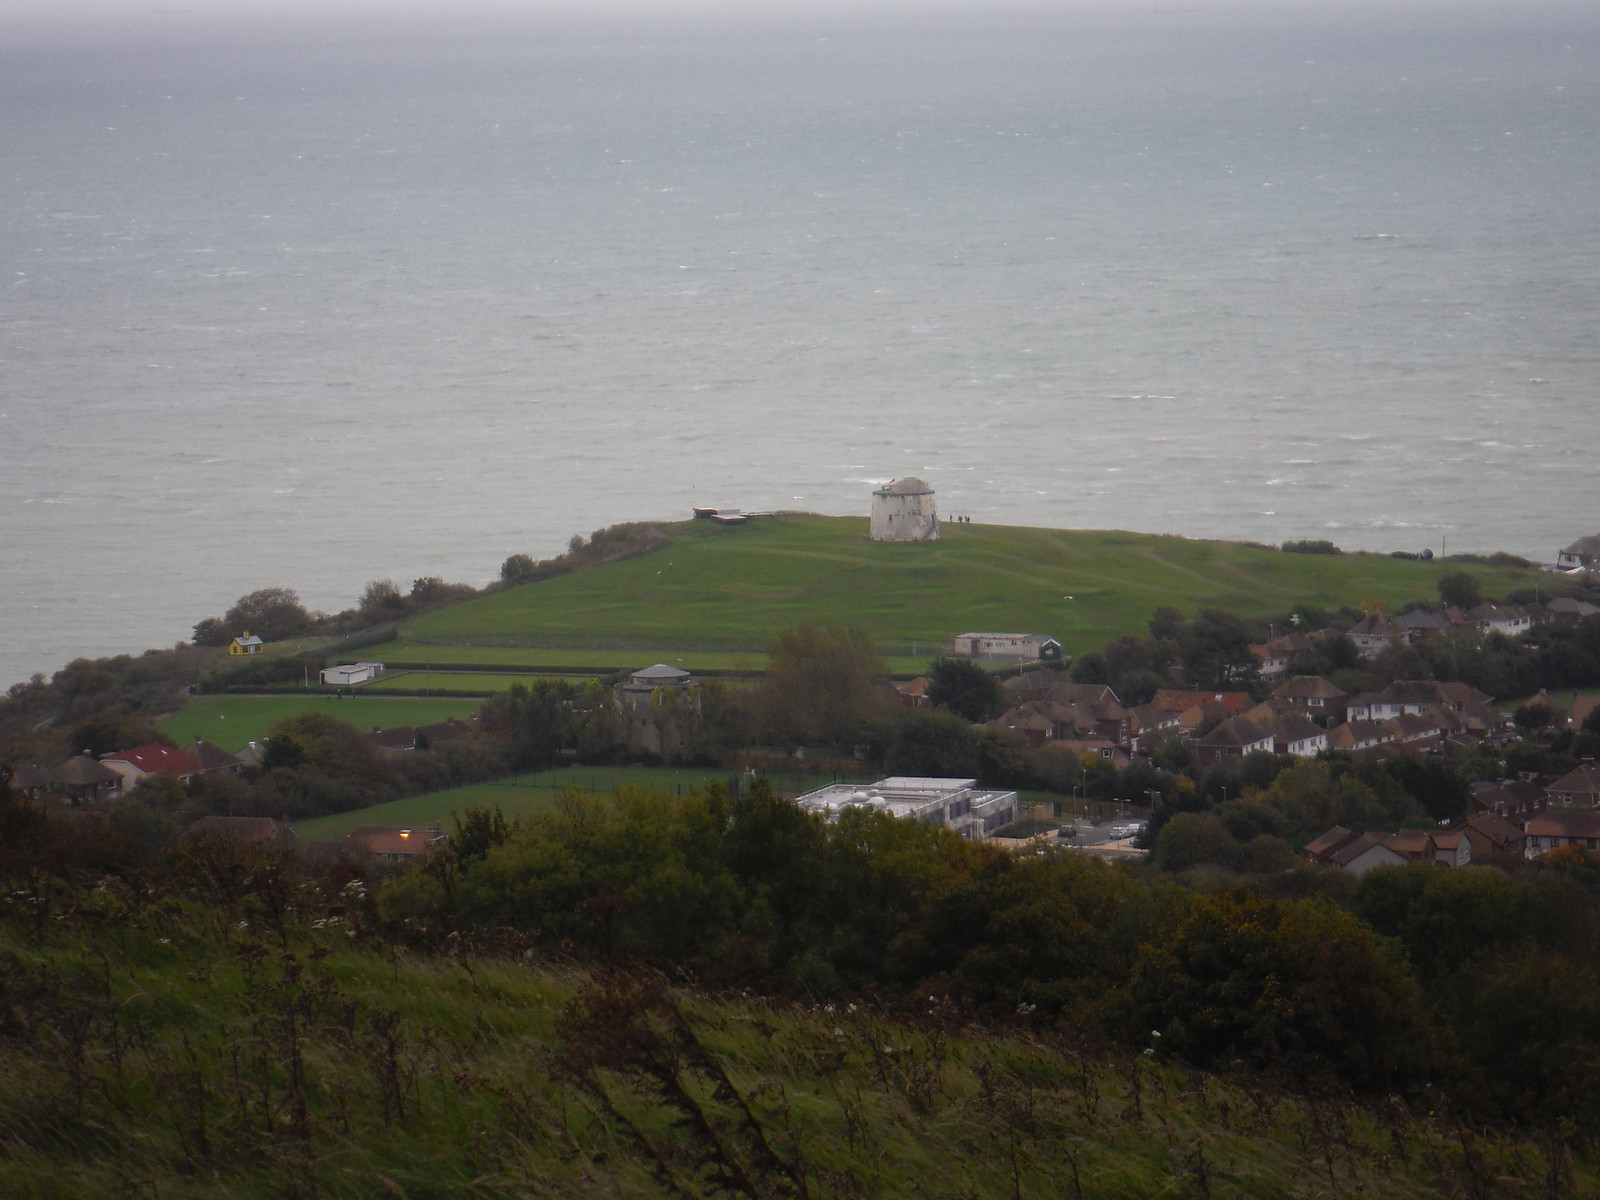 Martello Tower No. 3 and Folkestone Outskirts SWC Walk 93 - North Downs Way: Sandling to Folkestone or Dover